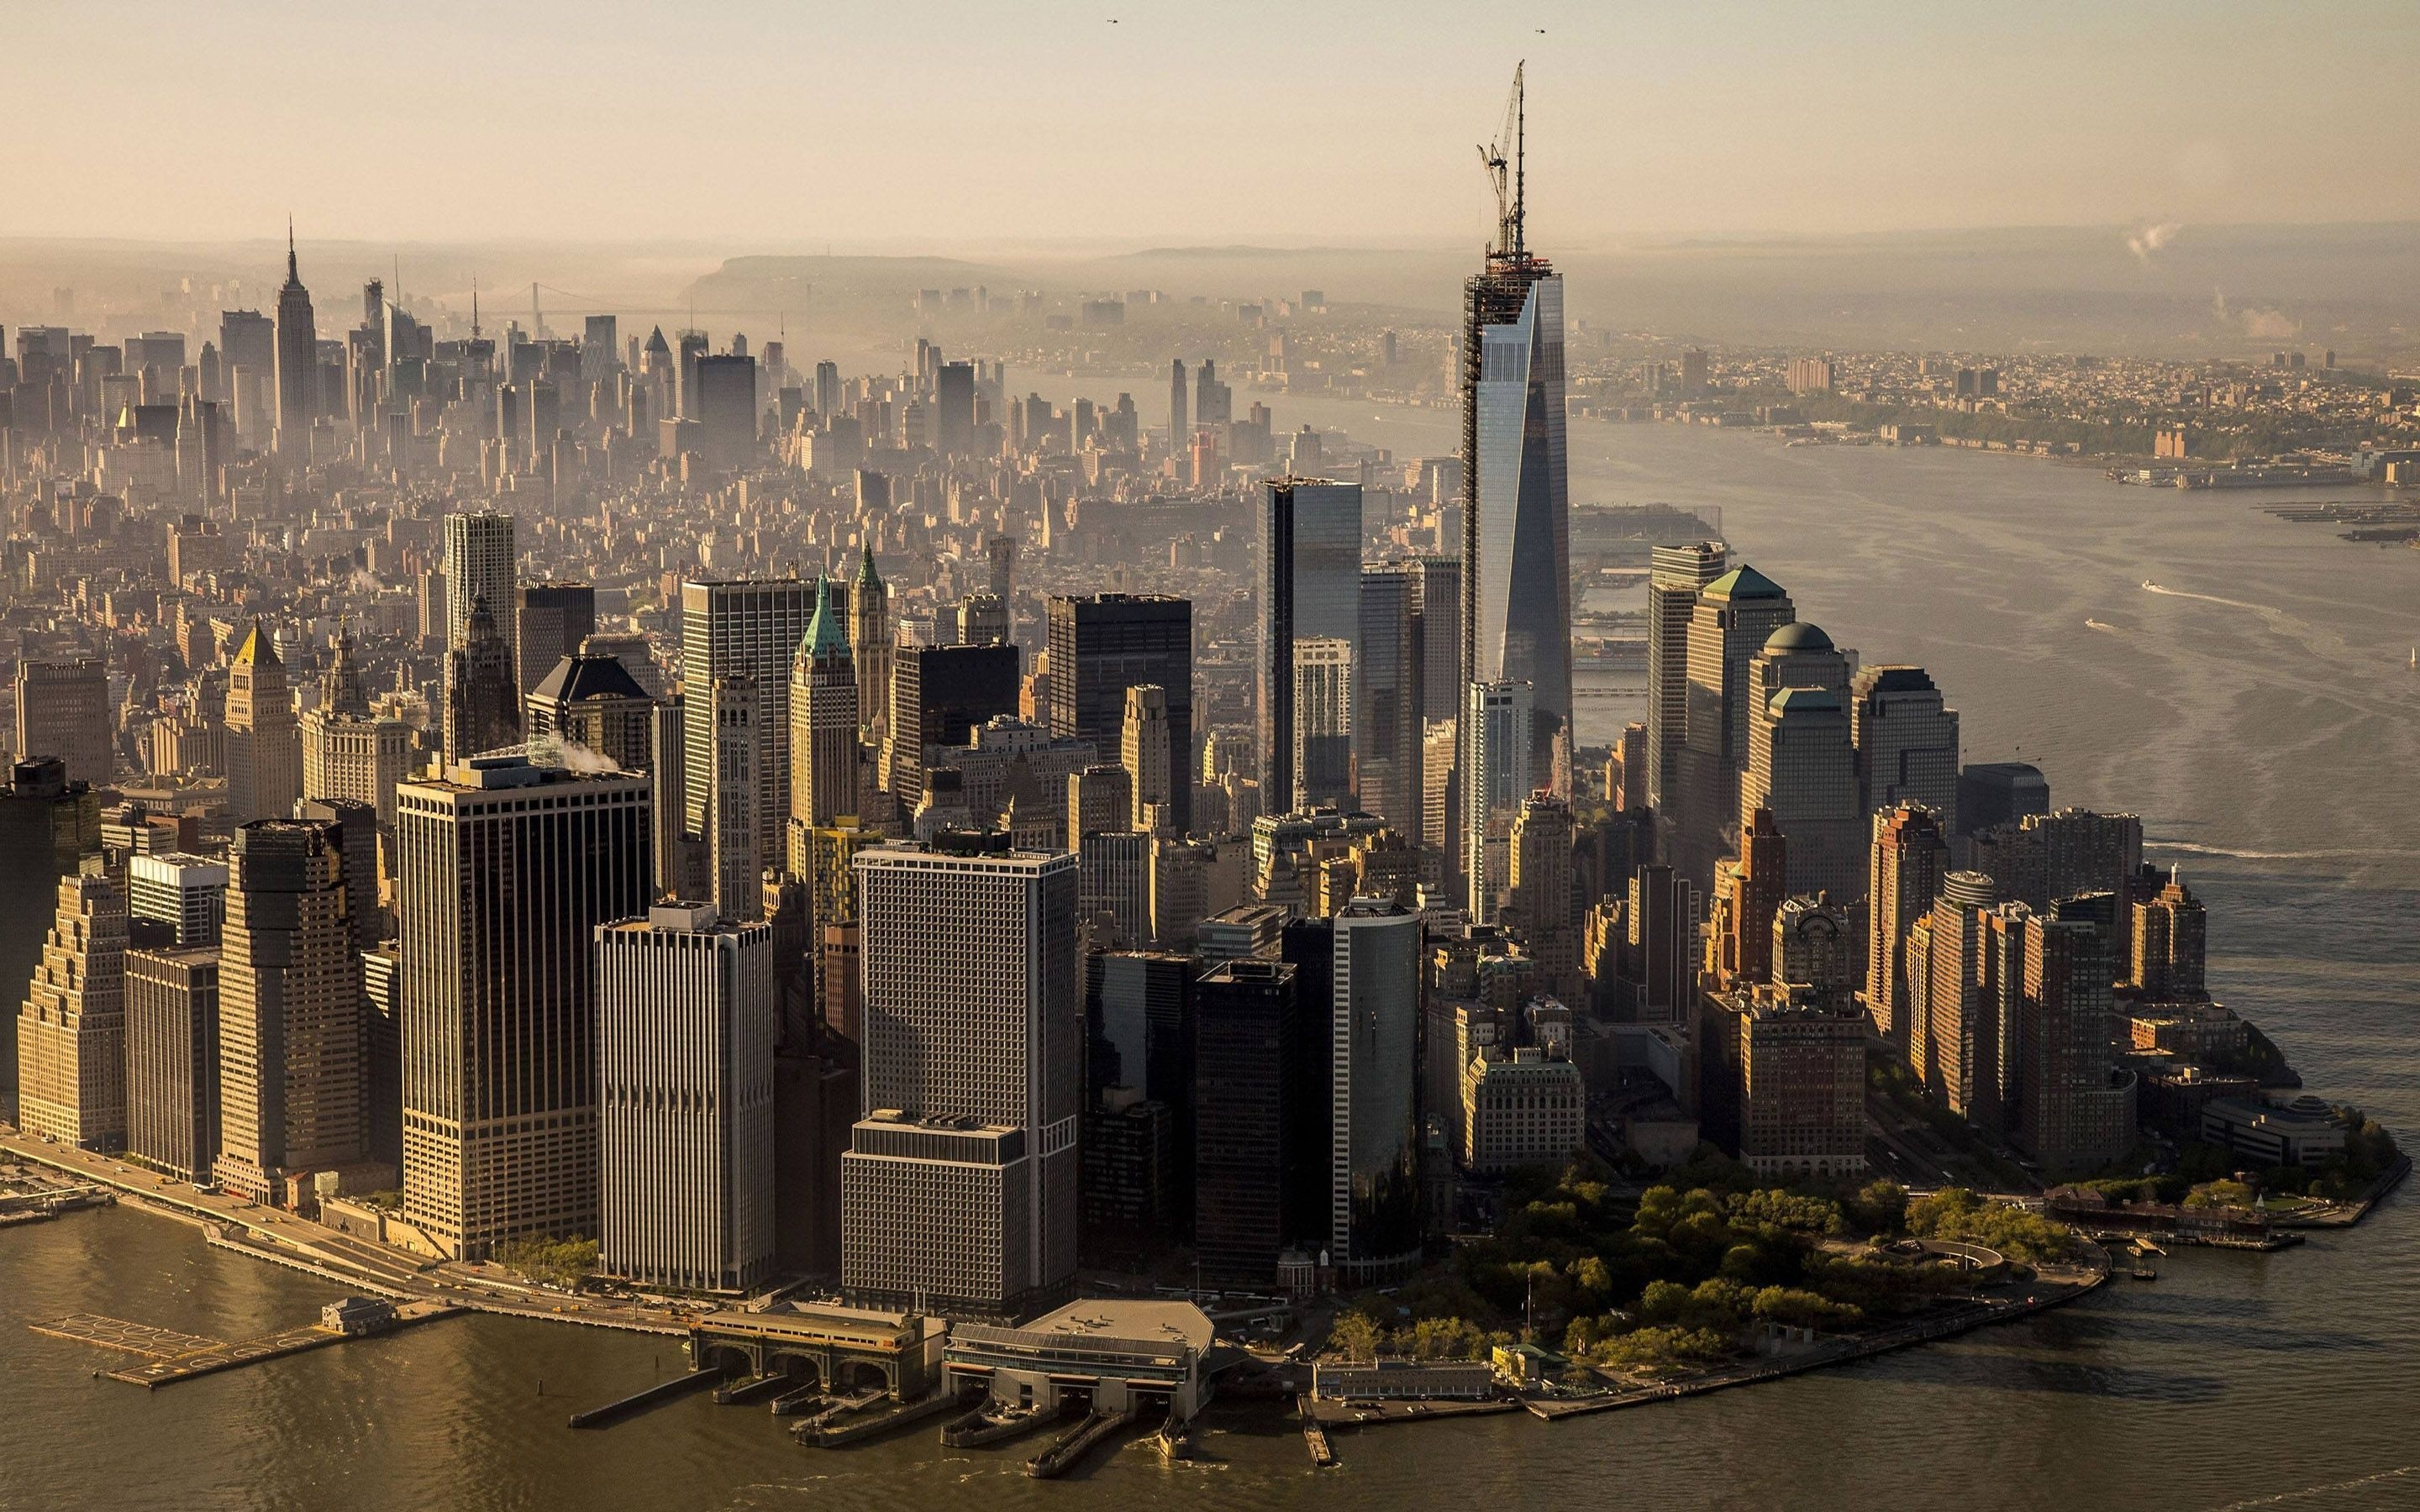 35 New York City 4k Android Iphone Desktop Hd Backgrounds Wallpapers 1080p 4k 2880x1800 2020